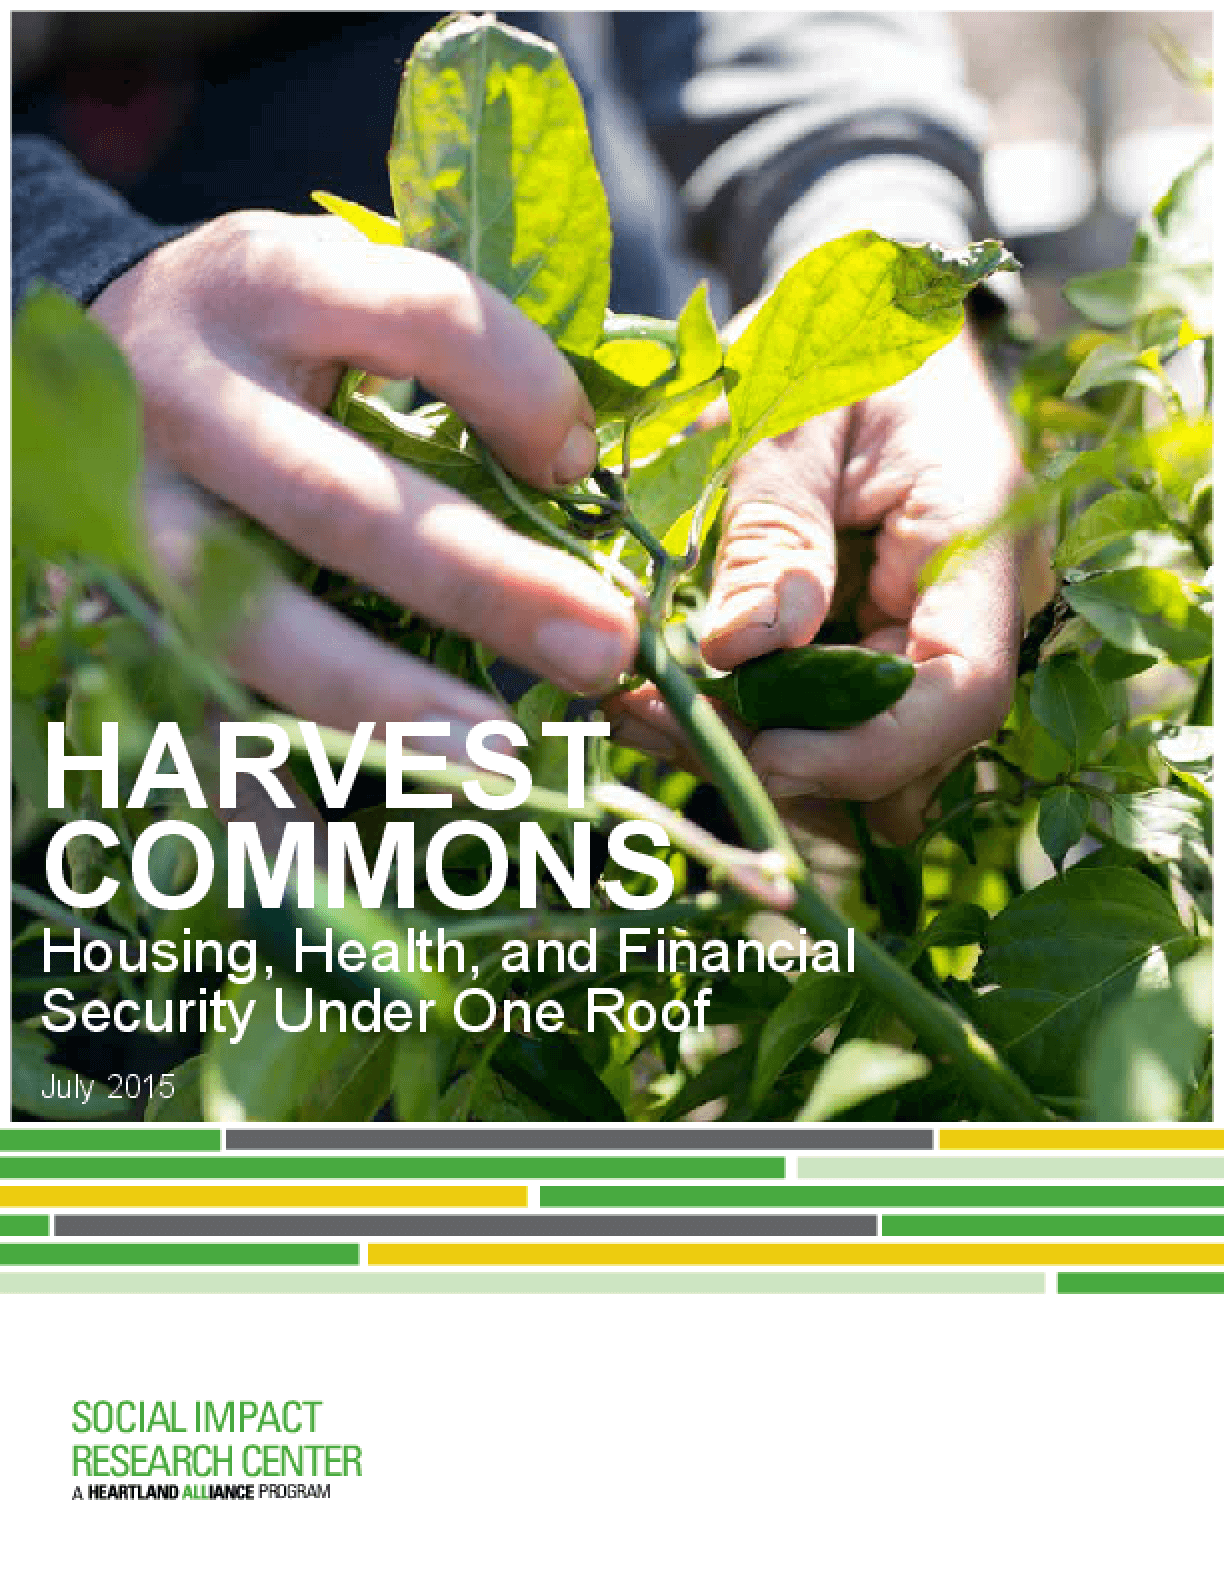 Harvest Commons: Housing, Health, and Financial Security Under One Roof